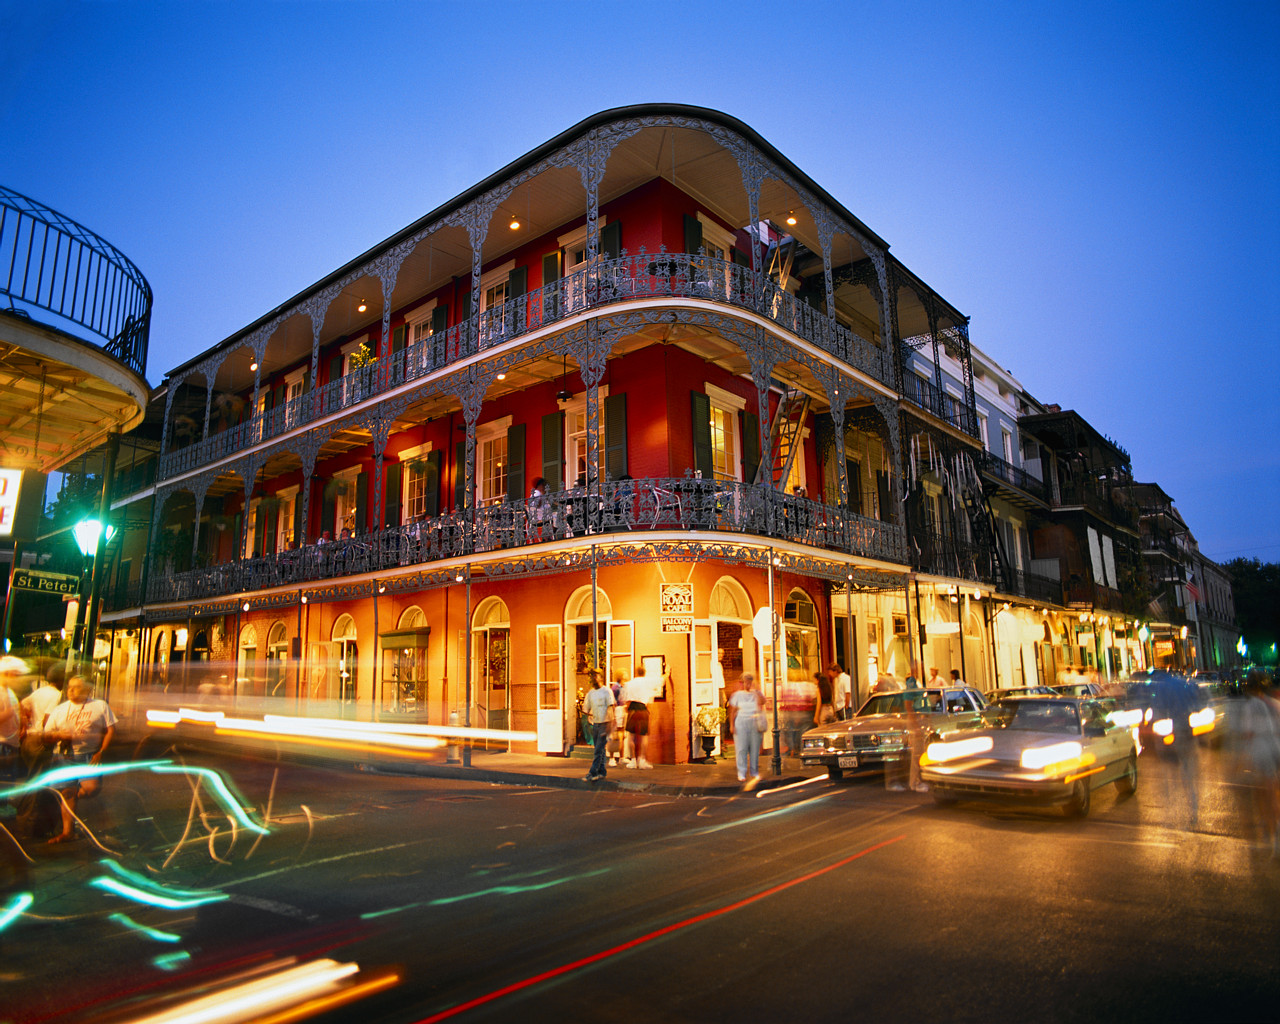 French Quarter at Dusk ...